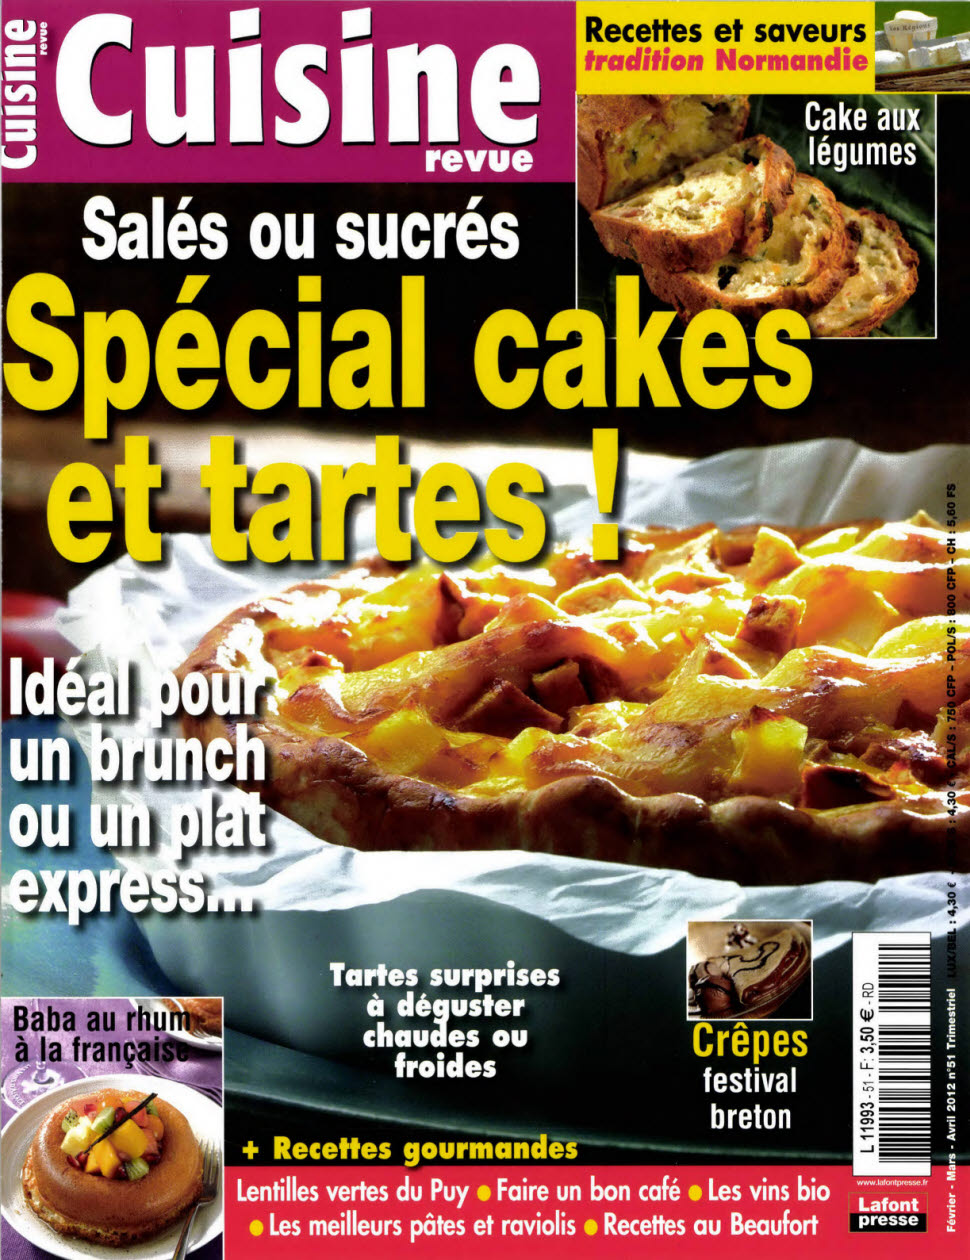 cuisine revue n 51 special cakes et tartes telecharger livres bd comics mangas magazines. Black Bedroom Furniture Sets. Home Design Ideas